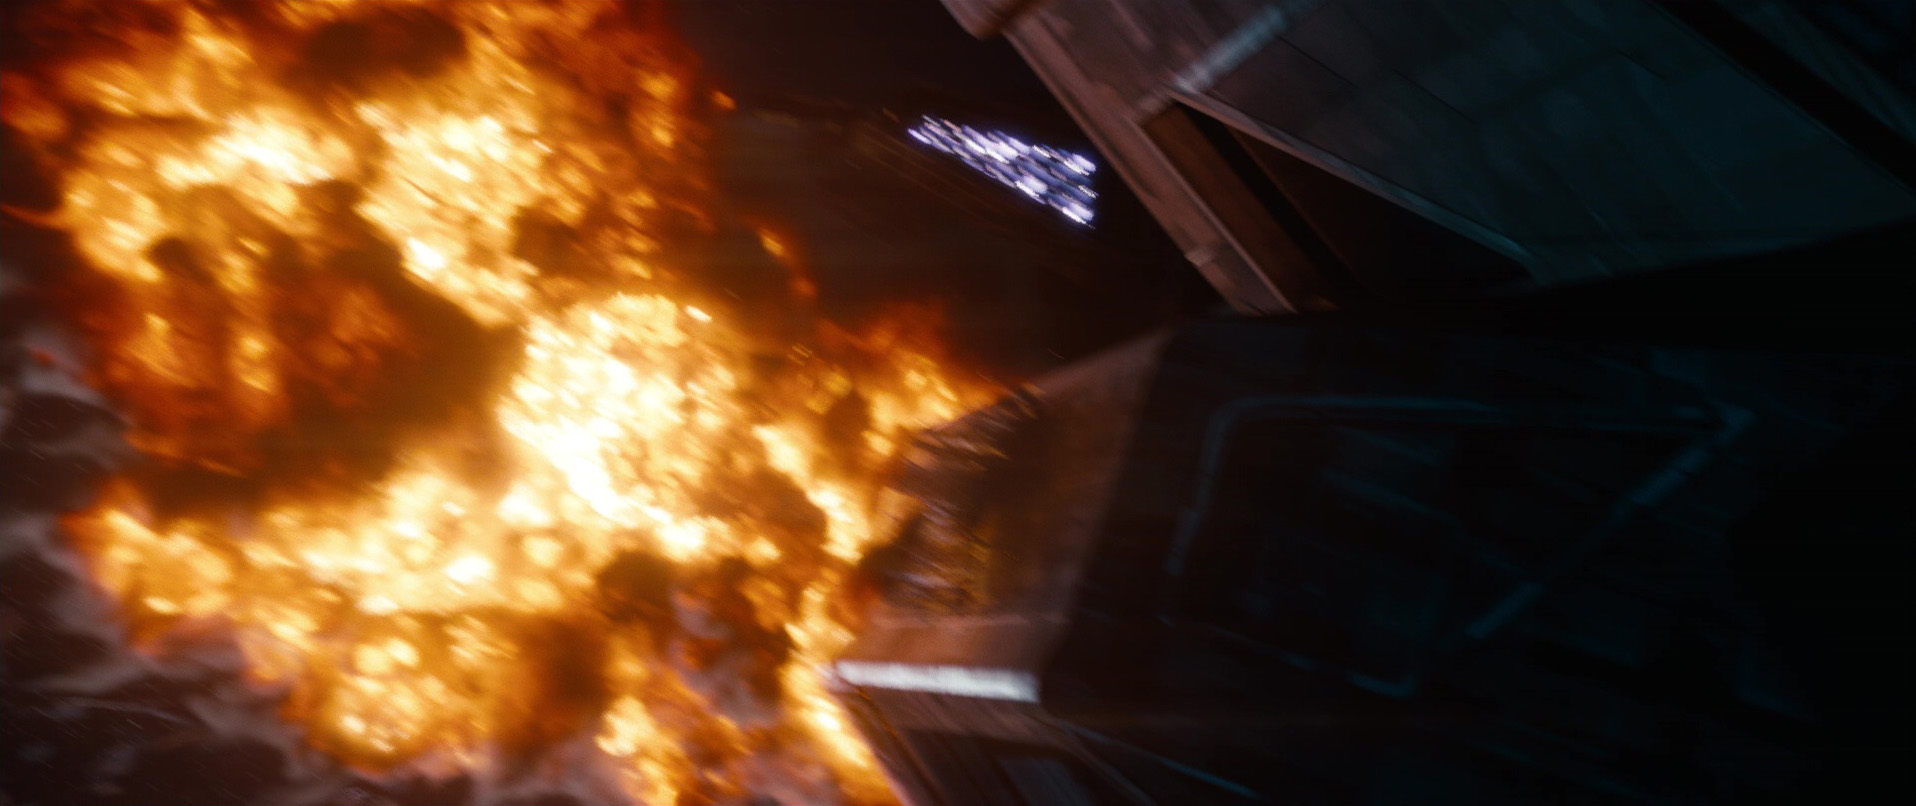 star-trek-into-darkness-hd-1969.jpg